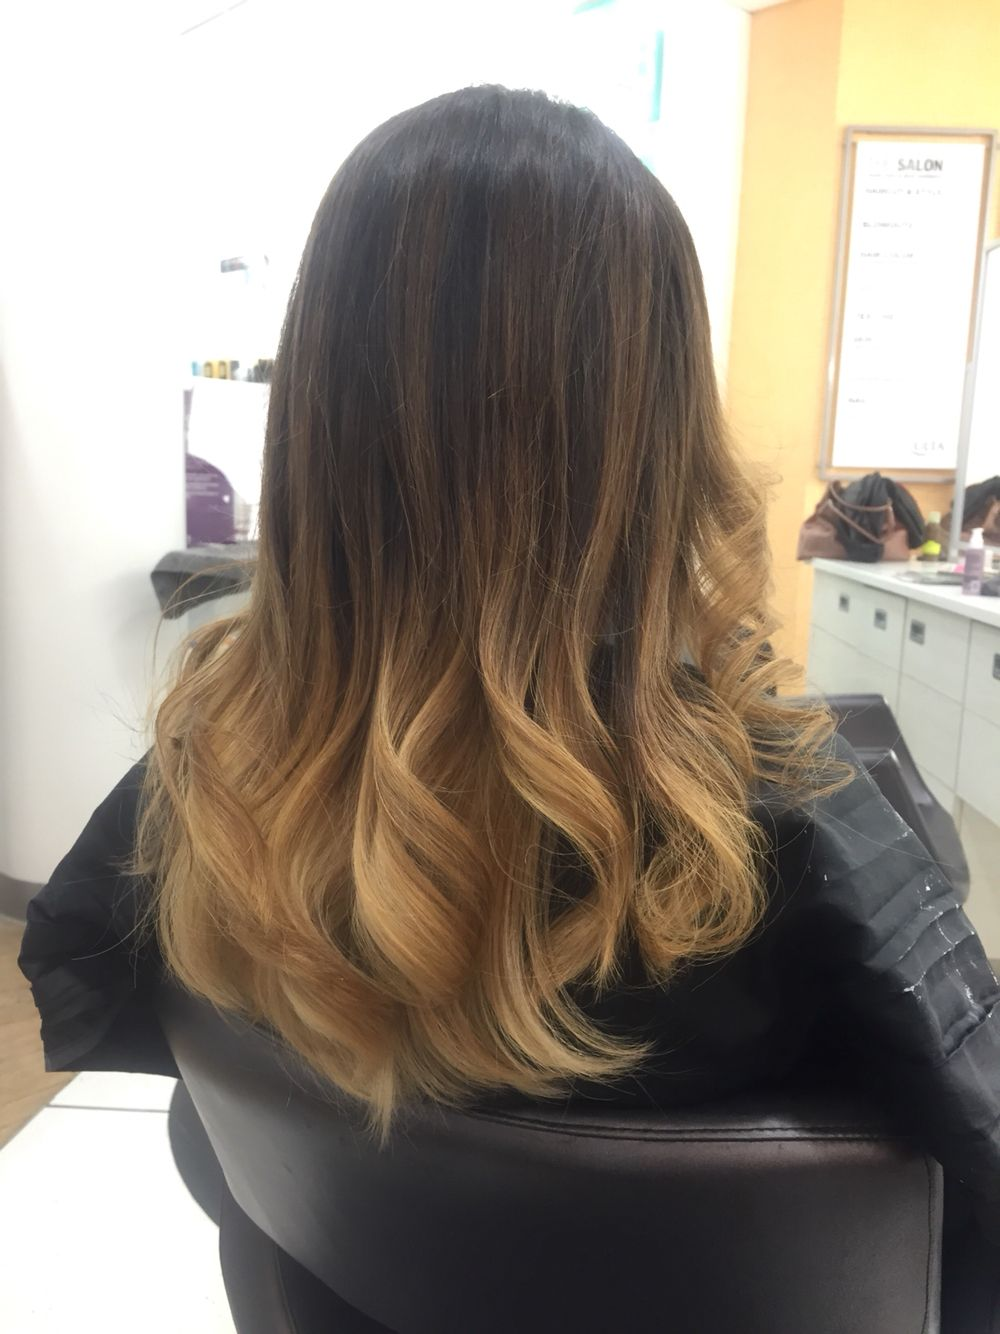 Ombre Done At Ulta Hair Salon Hair Styles Hair Long Hair Styles